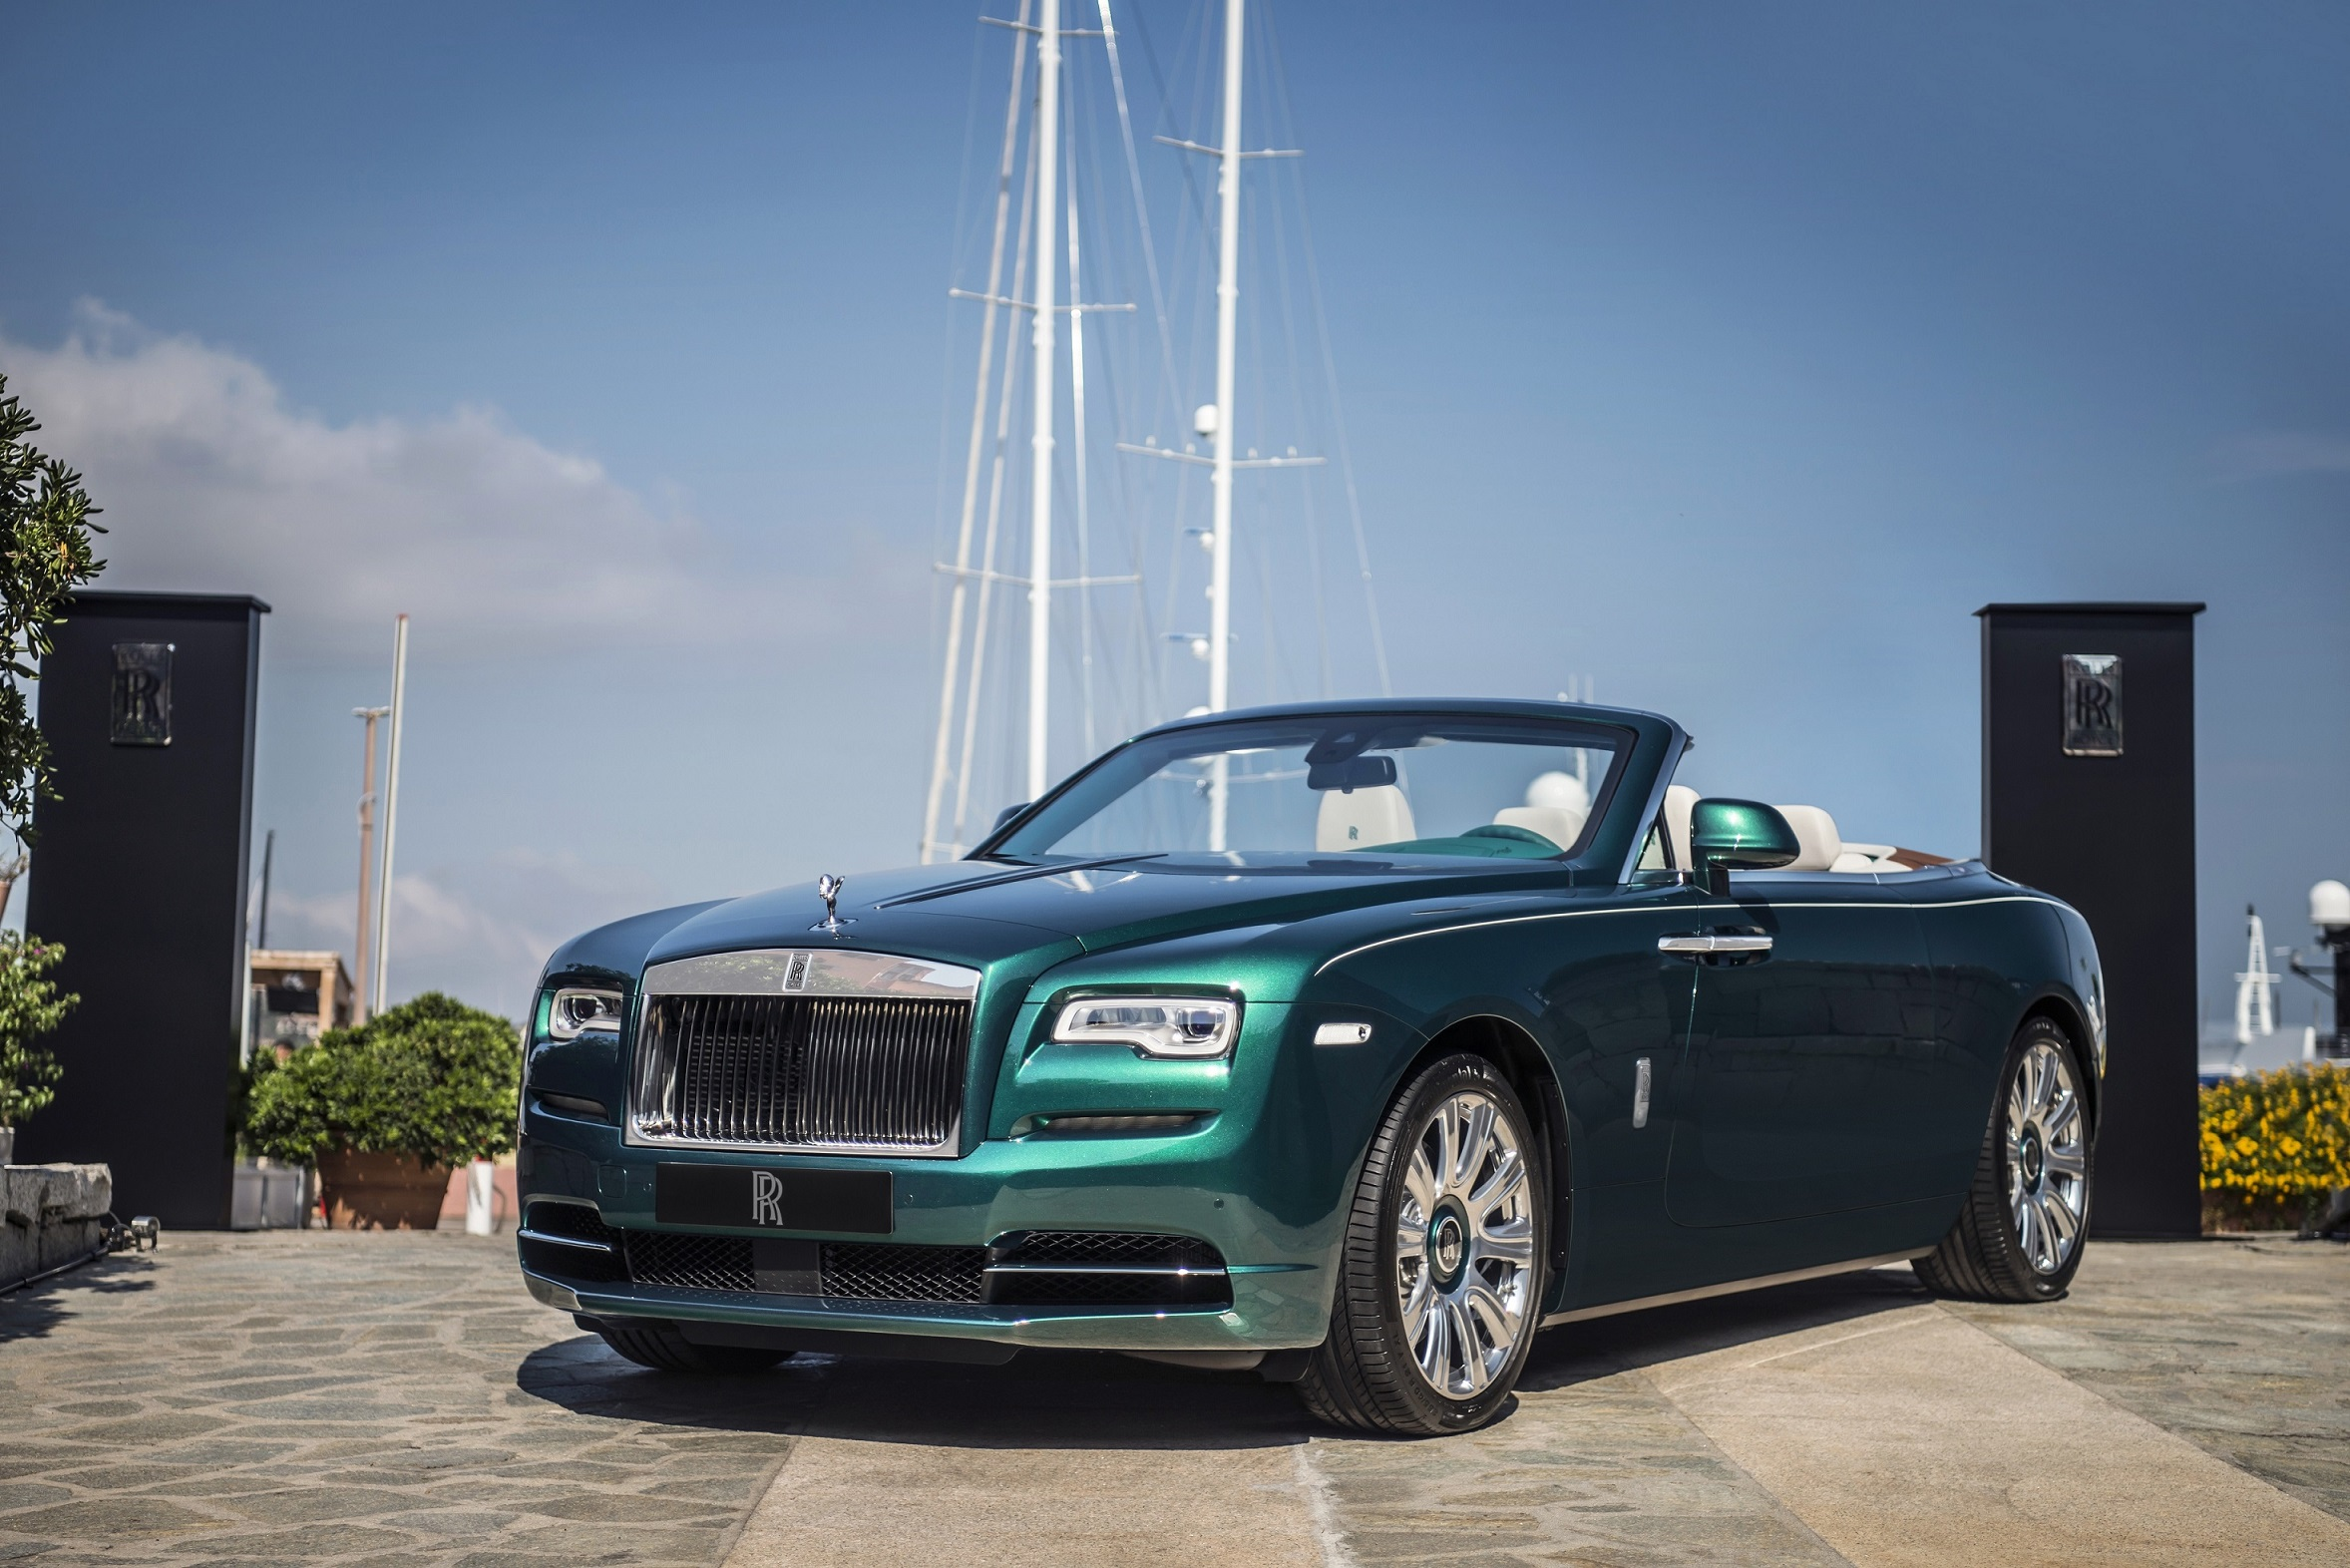 Shell Selected As Exclusive Supplier of Rolls-Royce Motor Cars Genuine Engine Oil